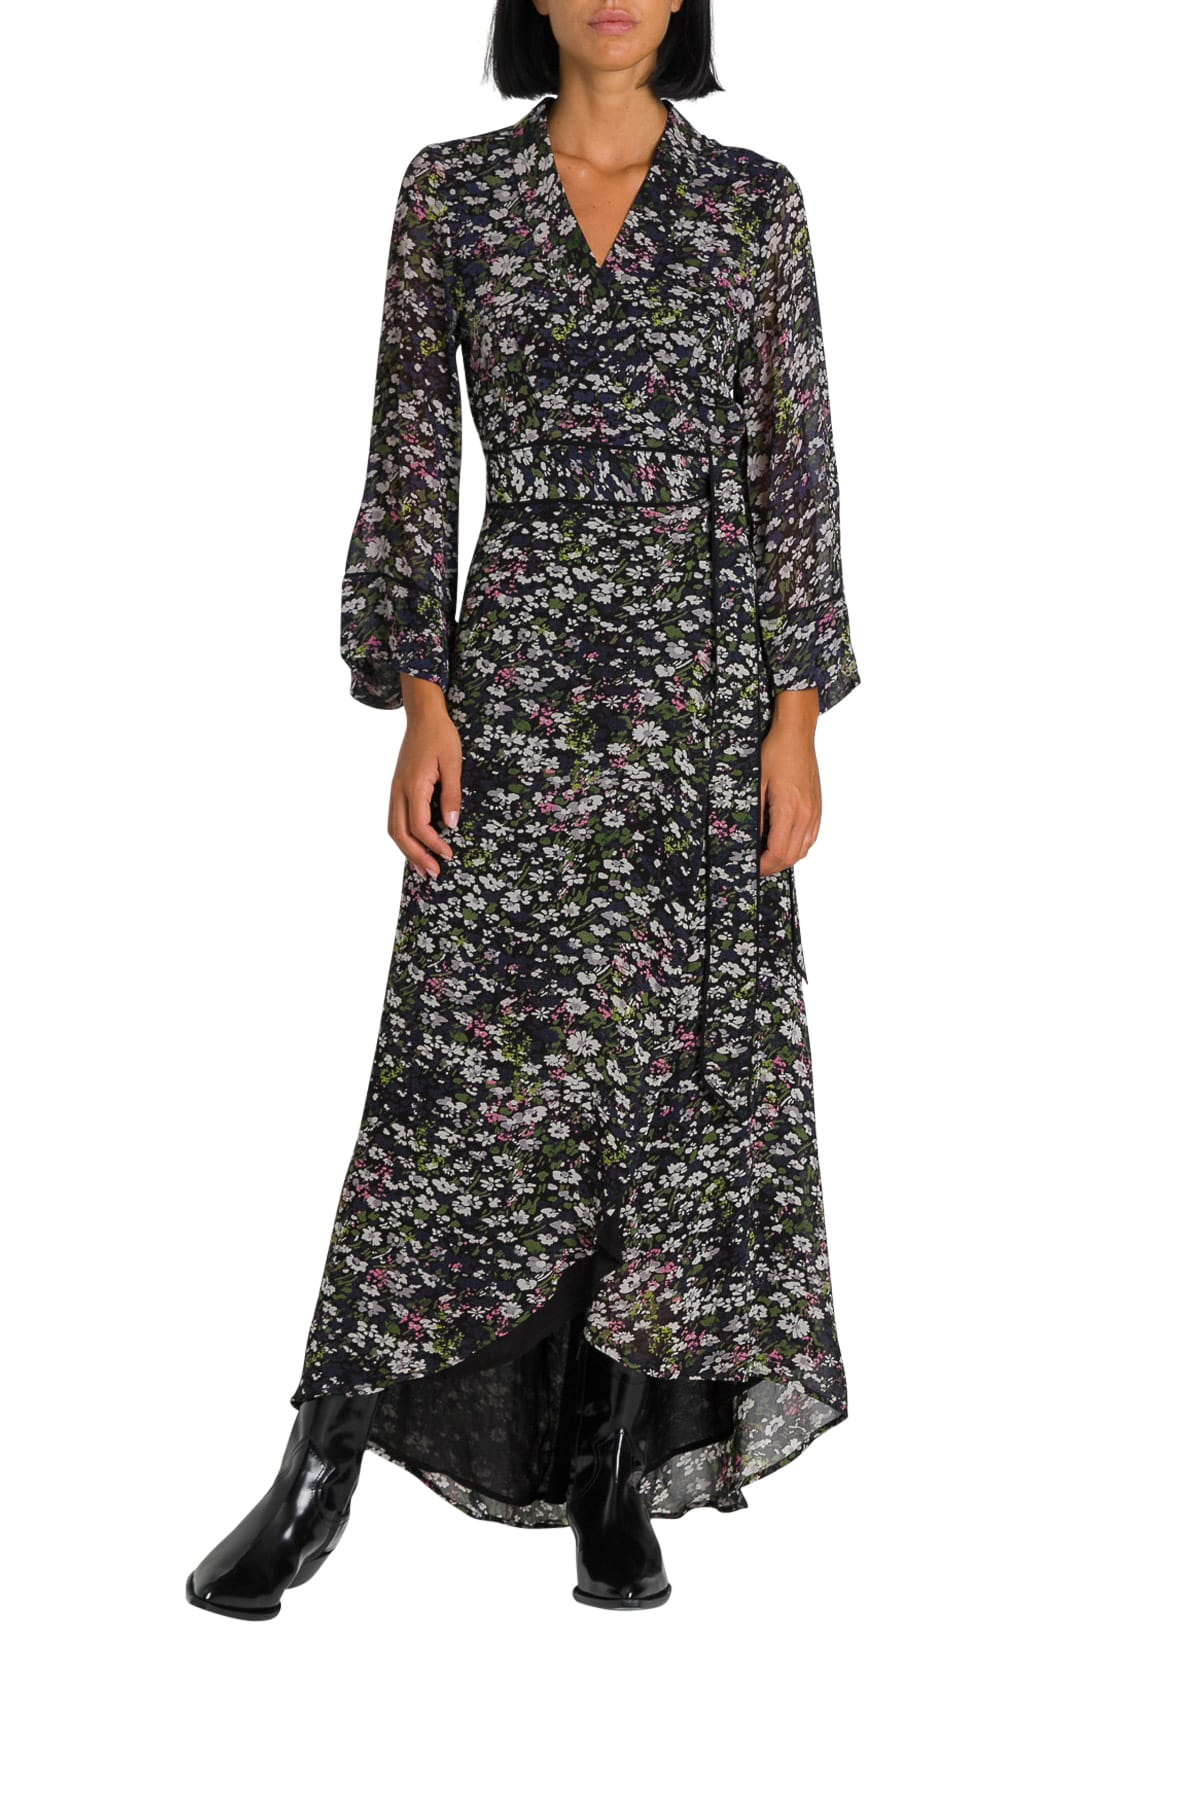 Ganni Maxi Floral Print Wrap Dress